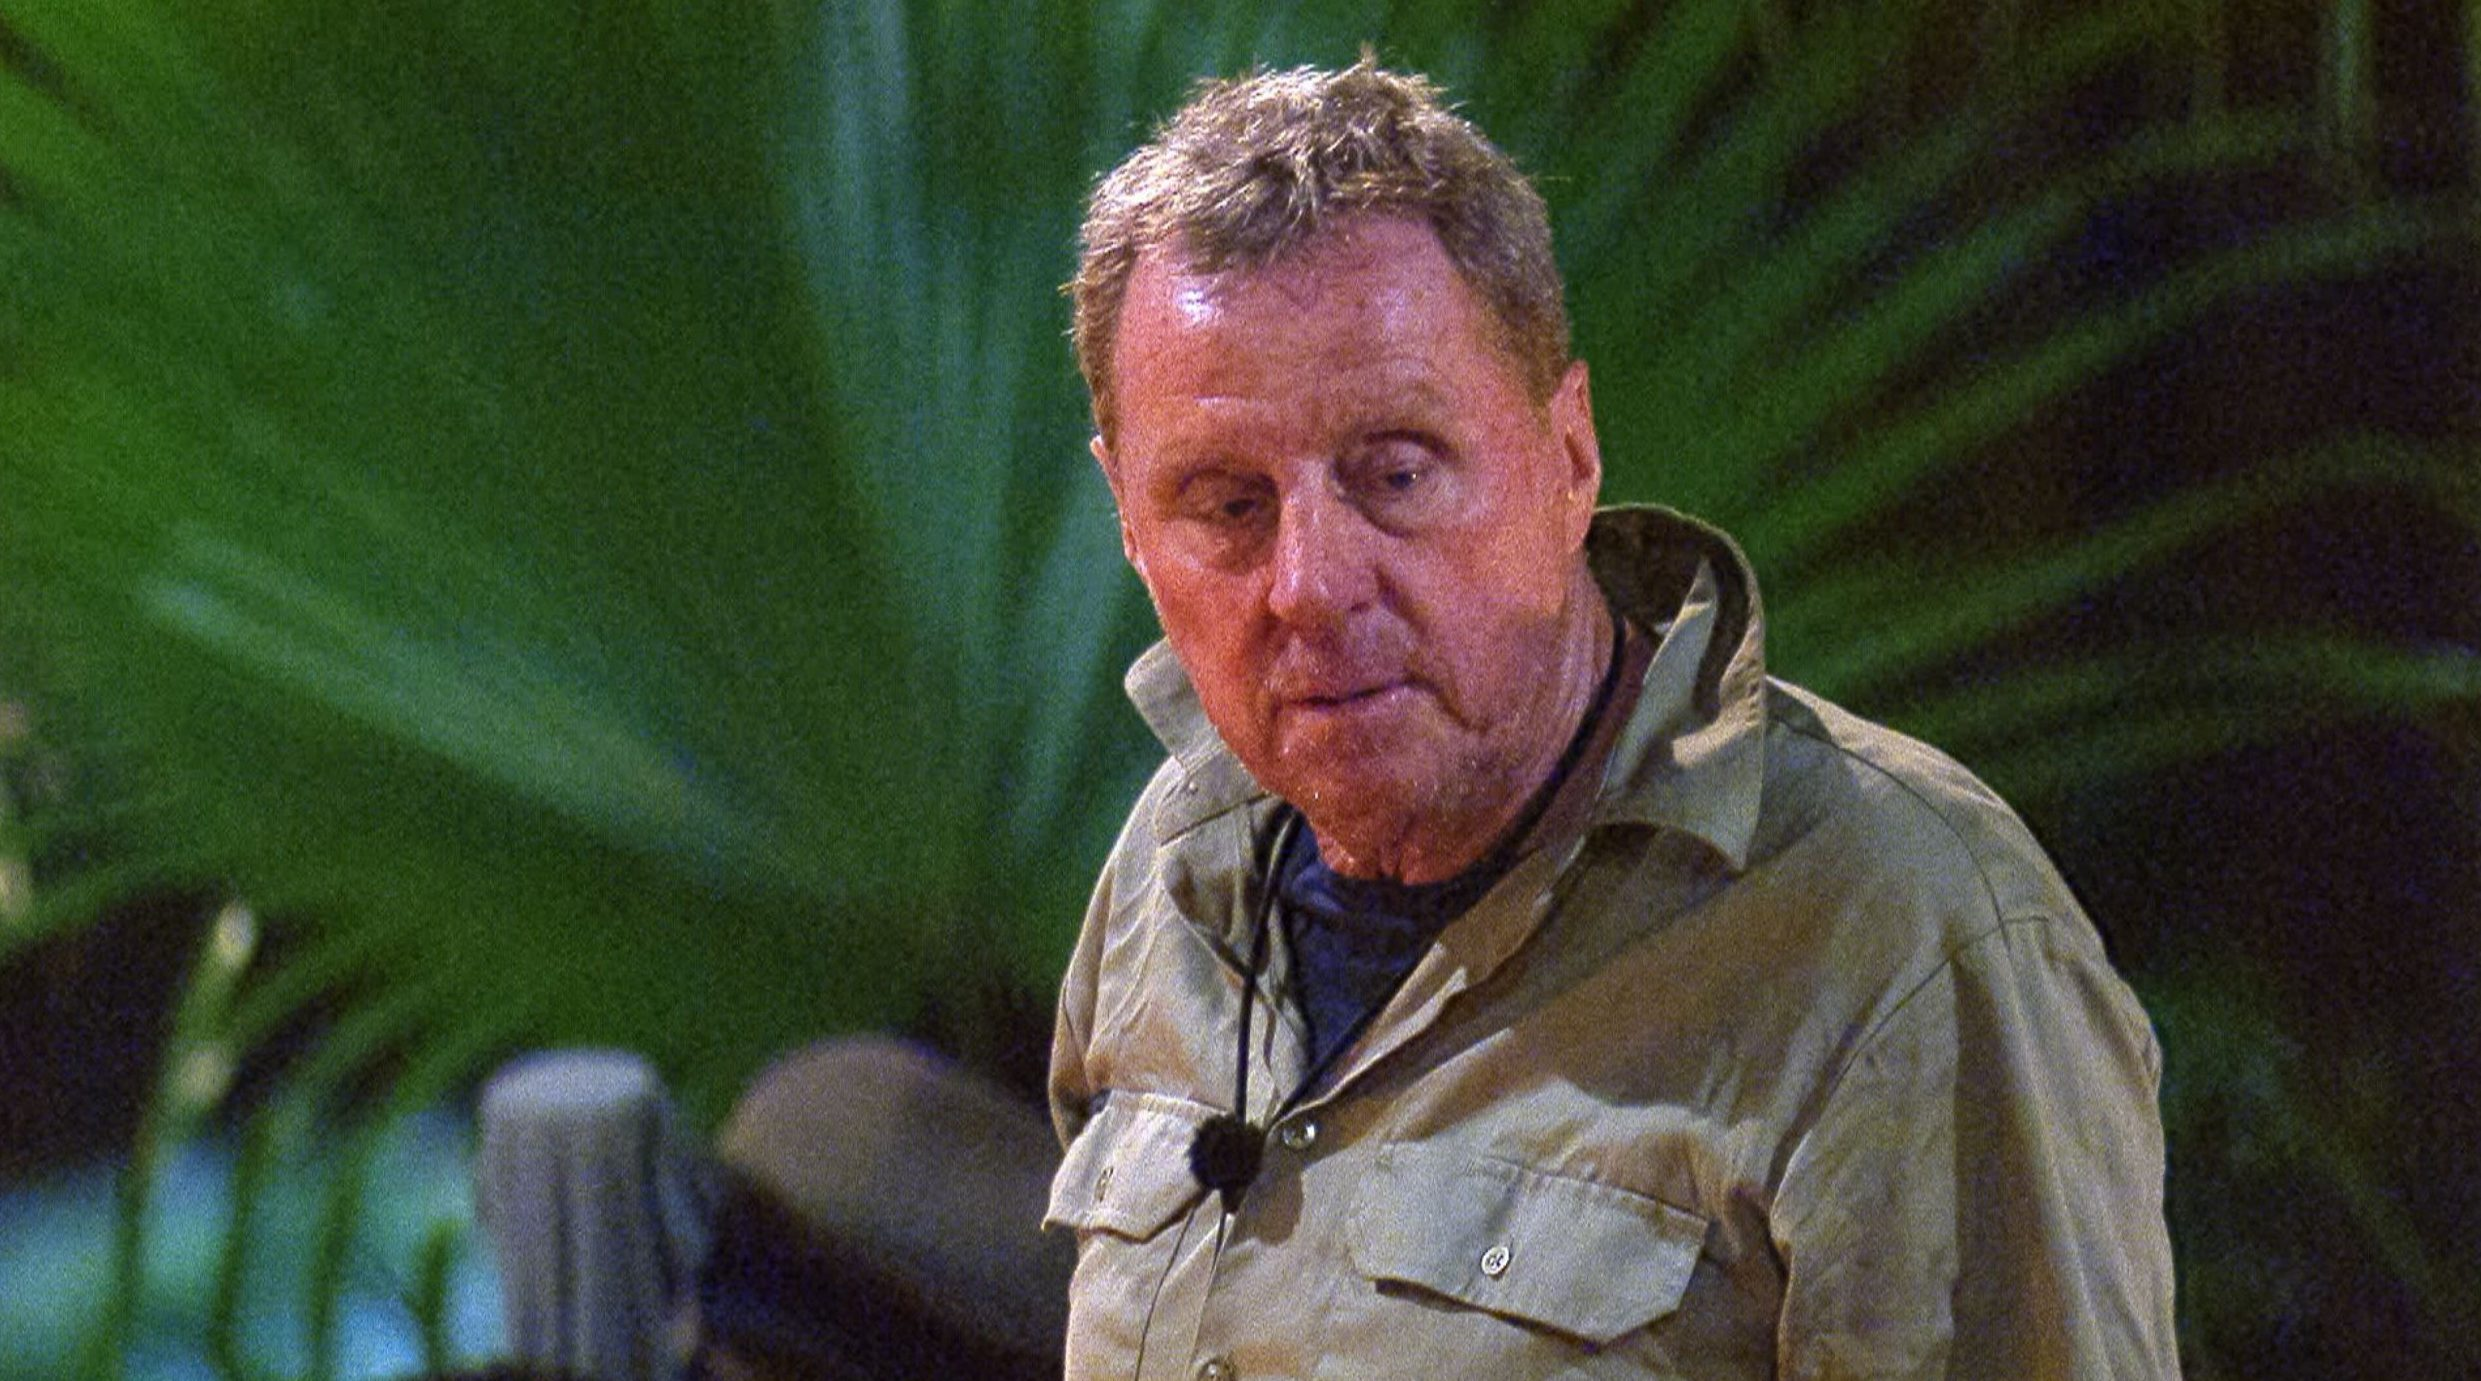 Harry Redknapp branded a 'sore loser' as he clashes with Nick Knowles and Rita Simons over trial